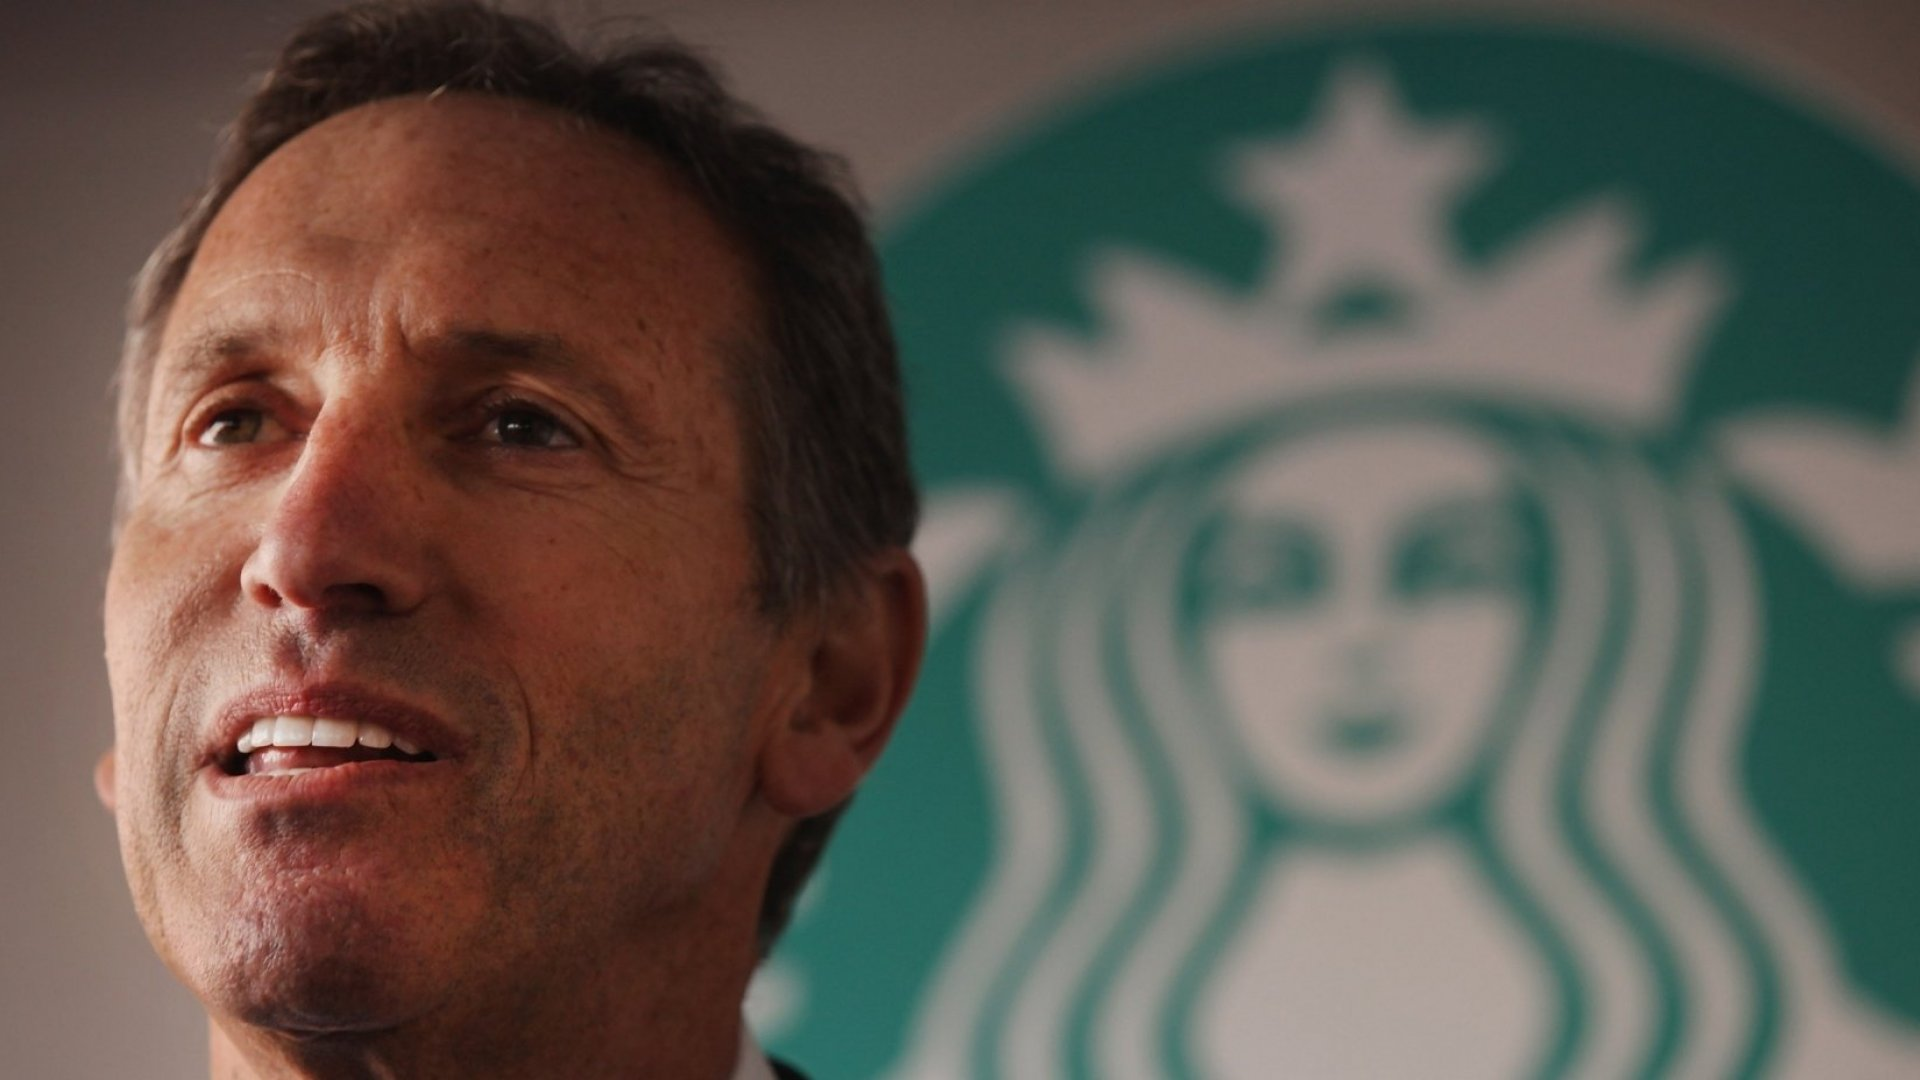 Starbucks Founder Says This Is the Most Undervalued Characteristic of Leadership (Most Struggle With It)